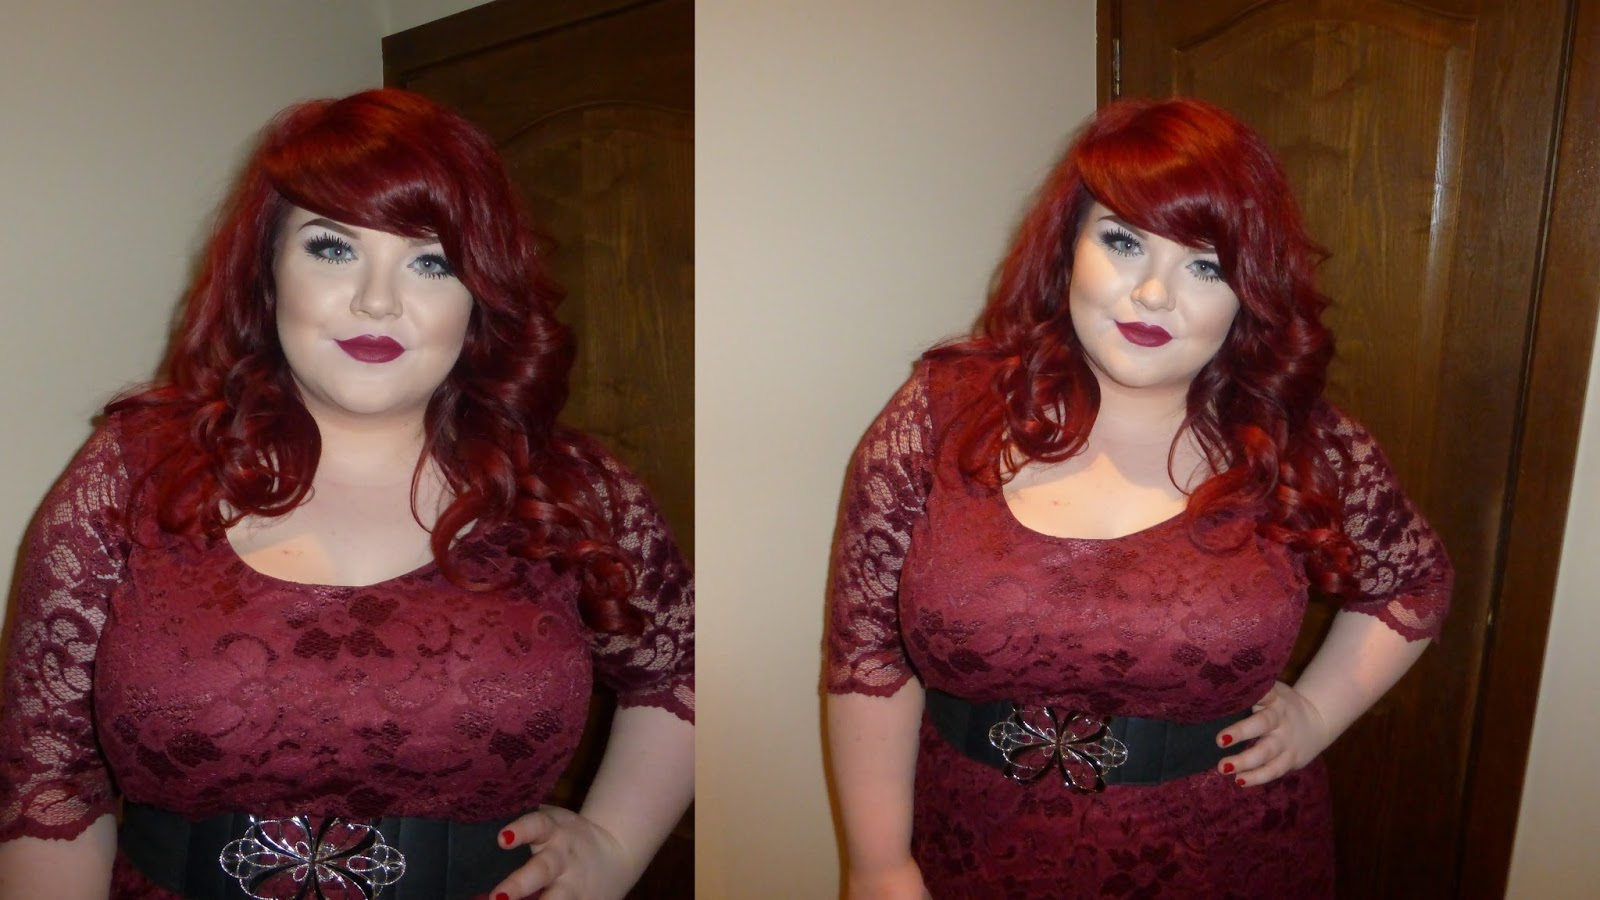 70e9a256b68 Boohoo Plus Size Range Review - She Might Be Loved